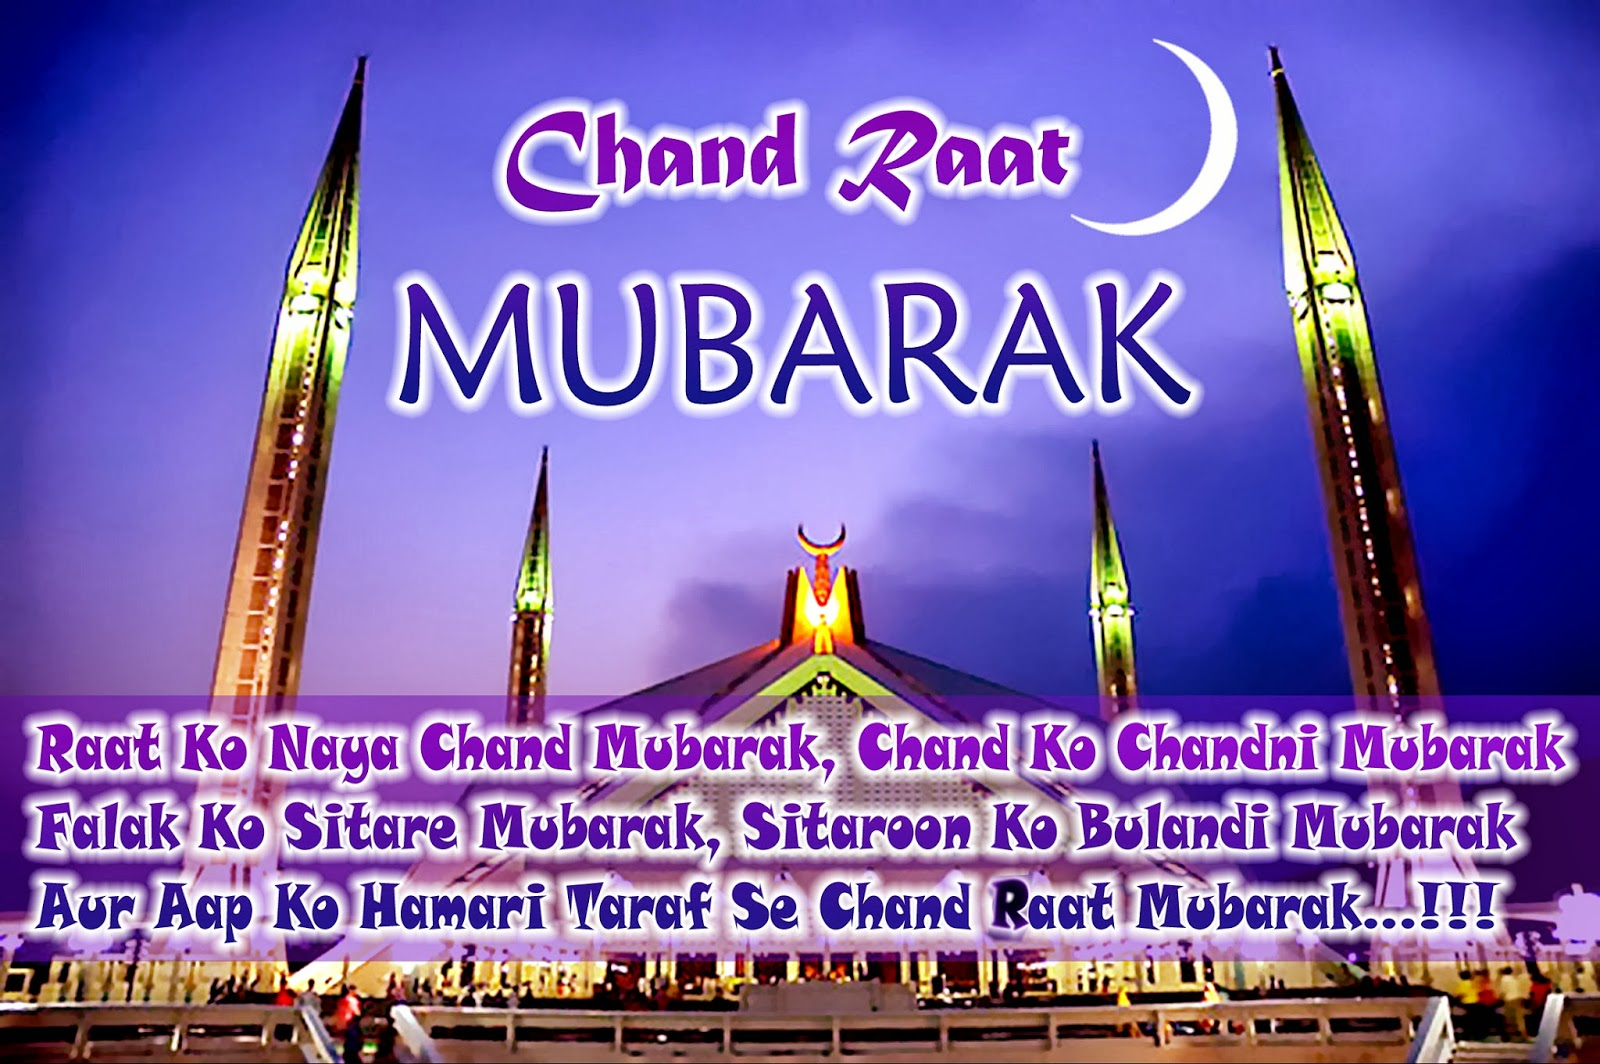 Best Chand Raat Mubarak Sms Shayari Pics Greetings Wallpaper Images 2015